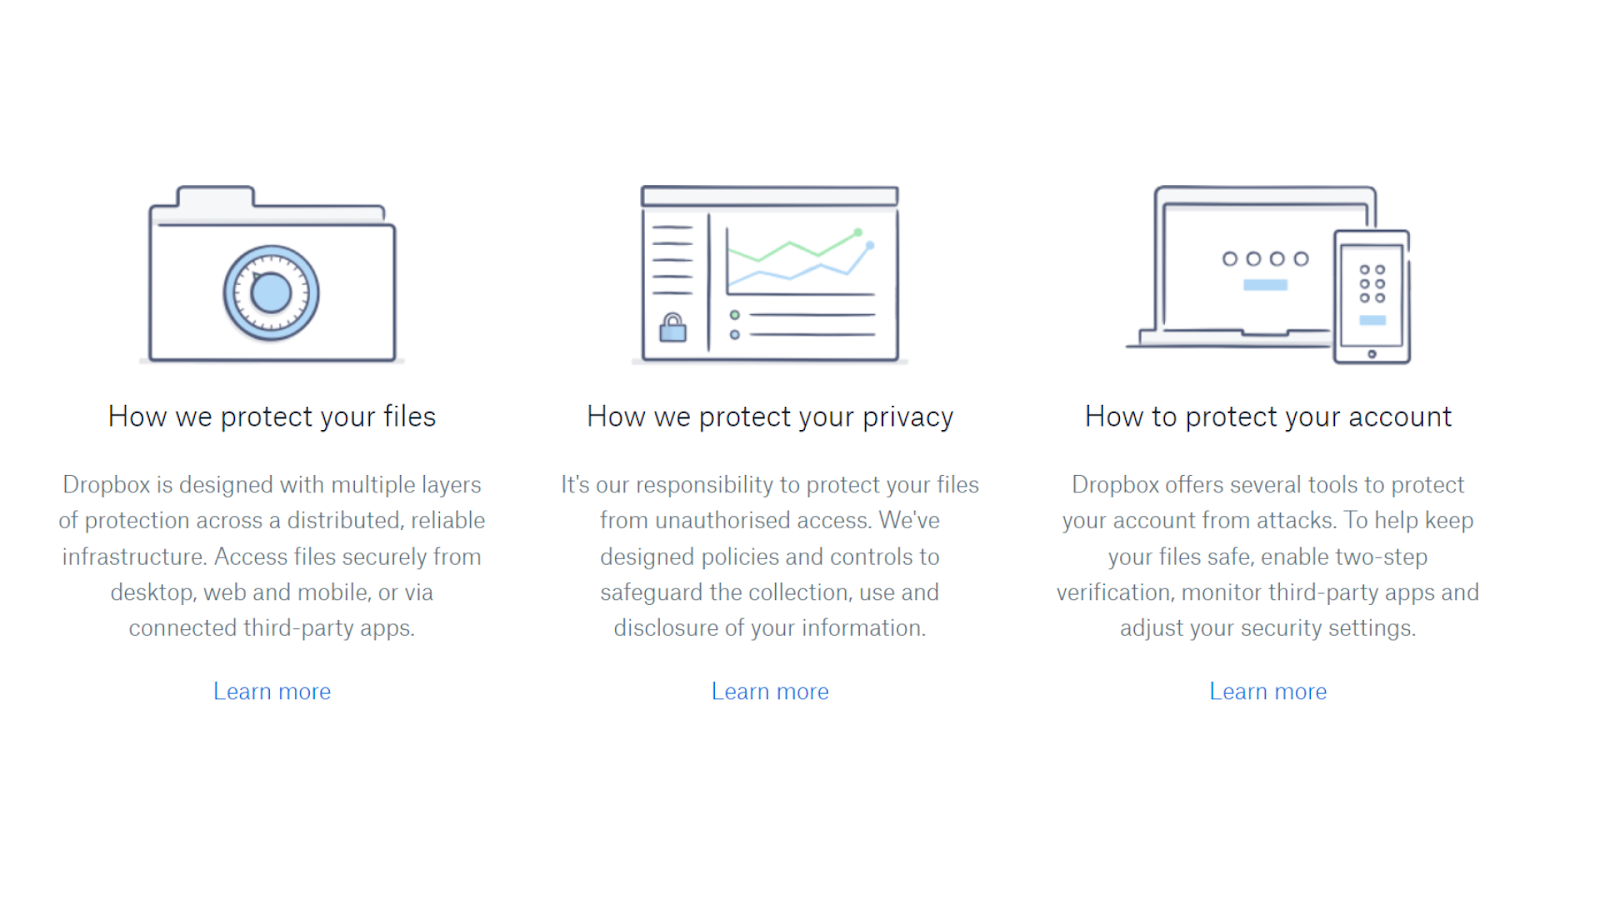 Dropbox's security features